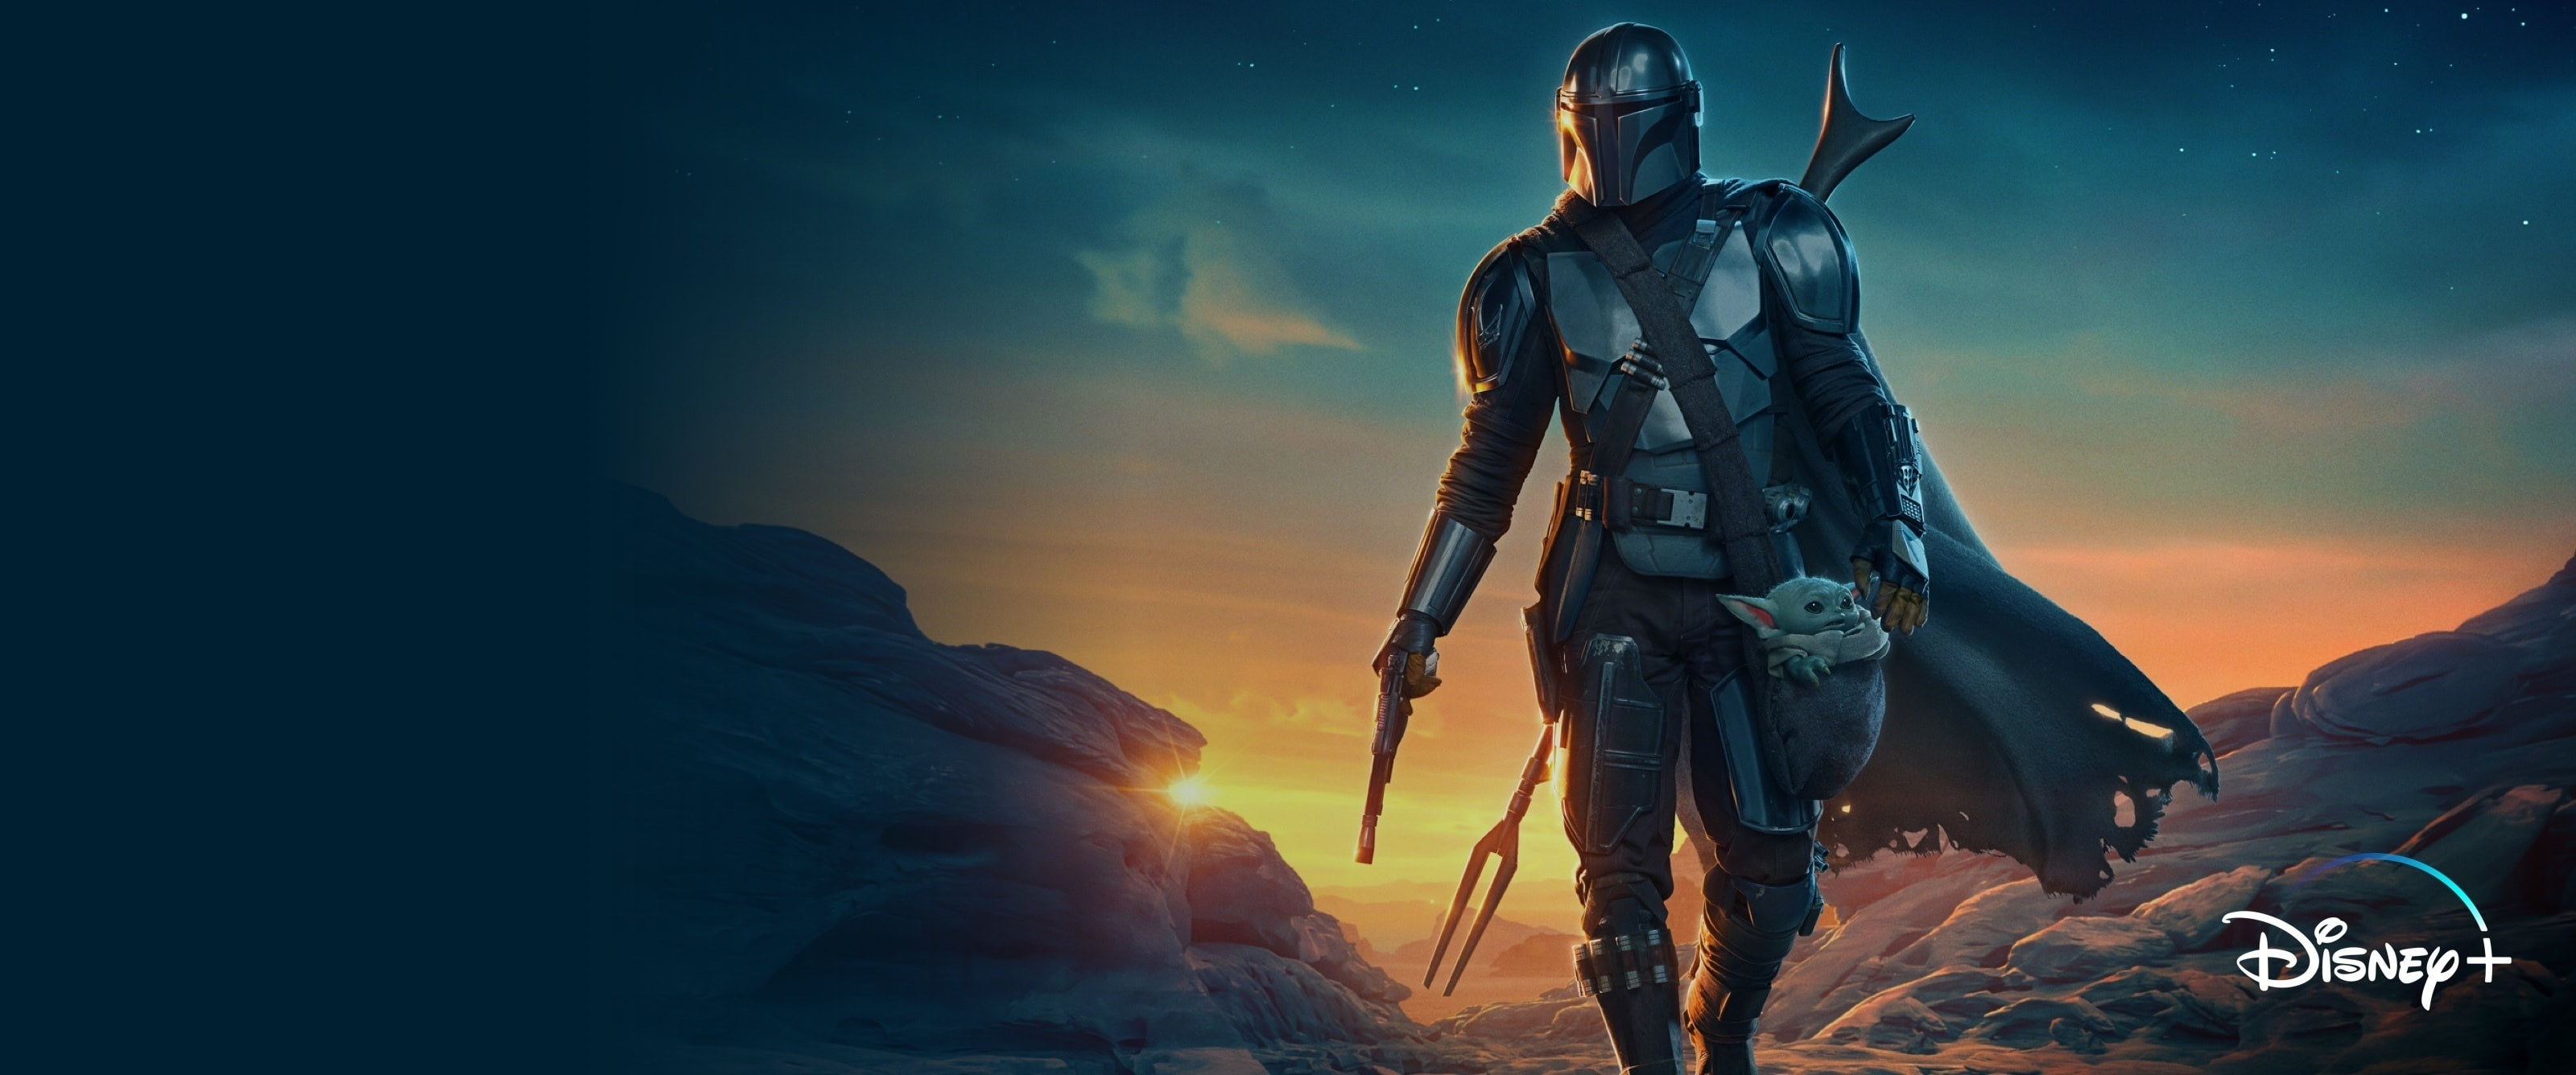 The Mandalorian Season 2 - new episode every Friday - only on Disney+